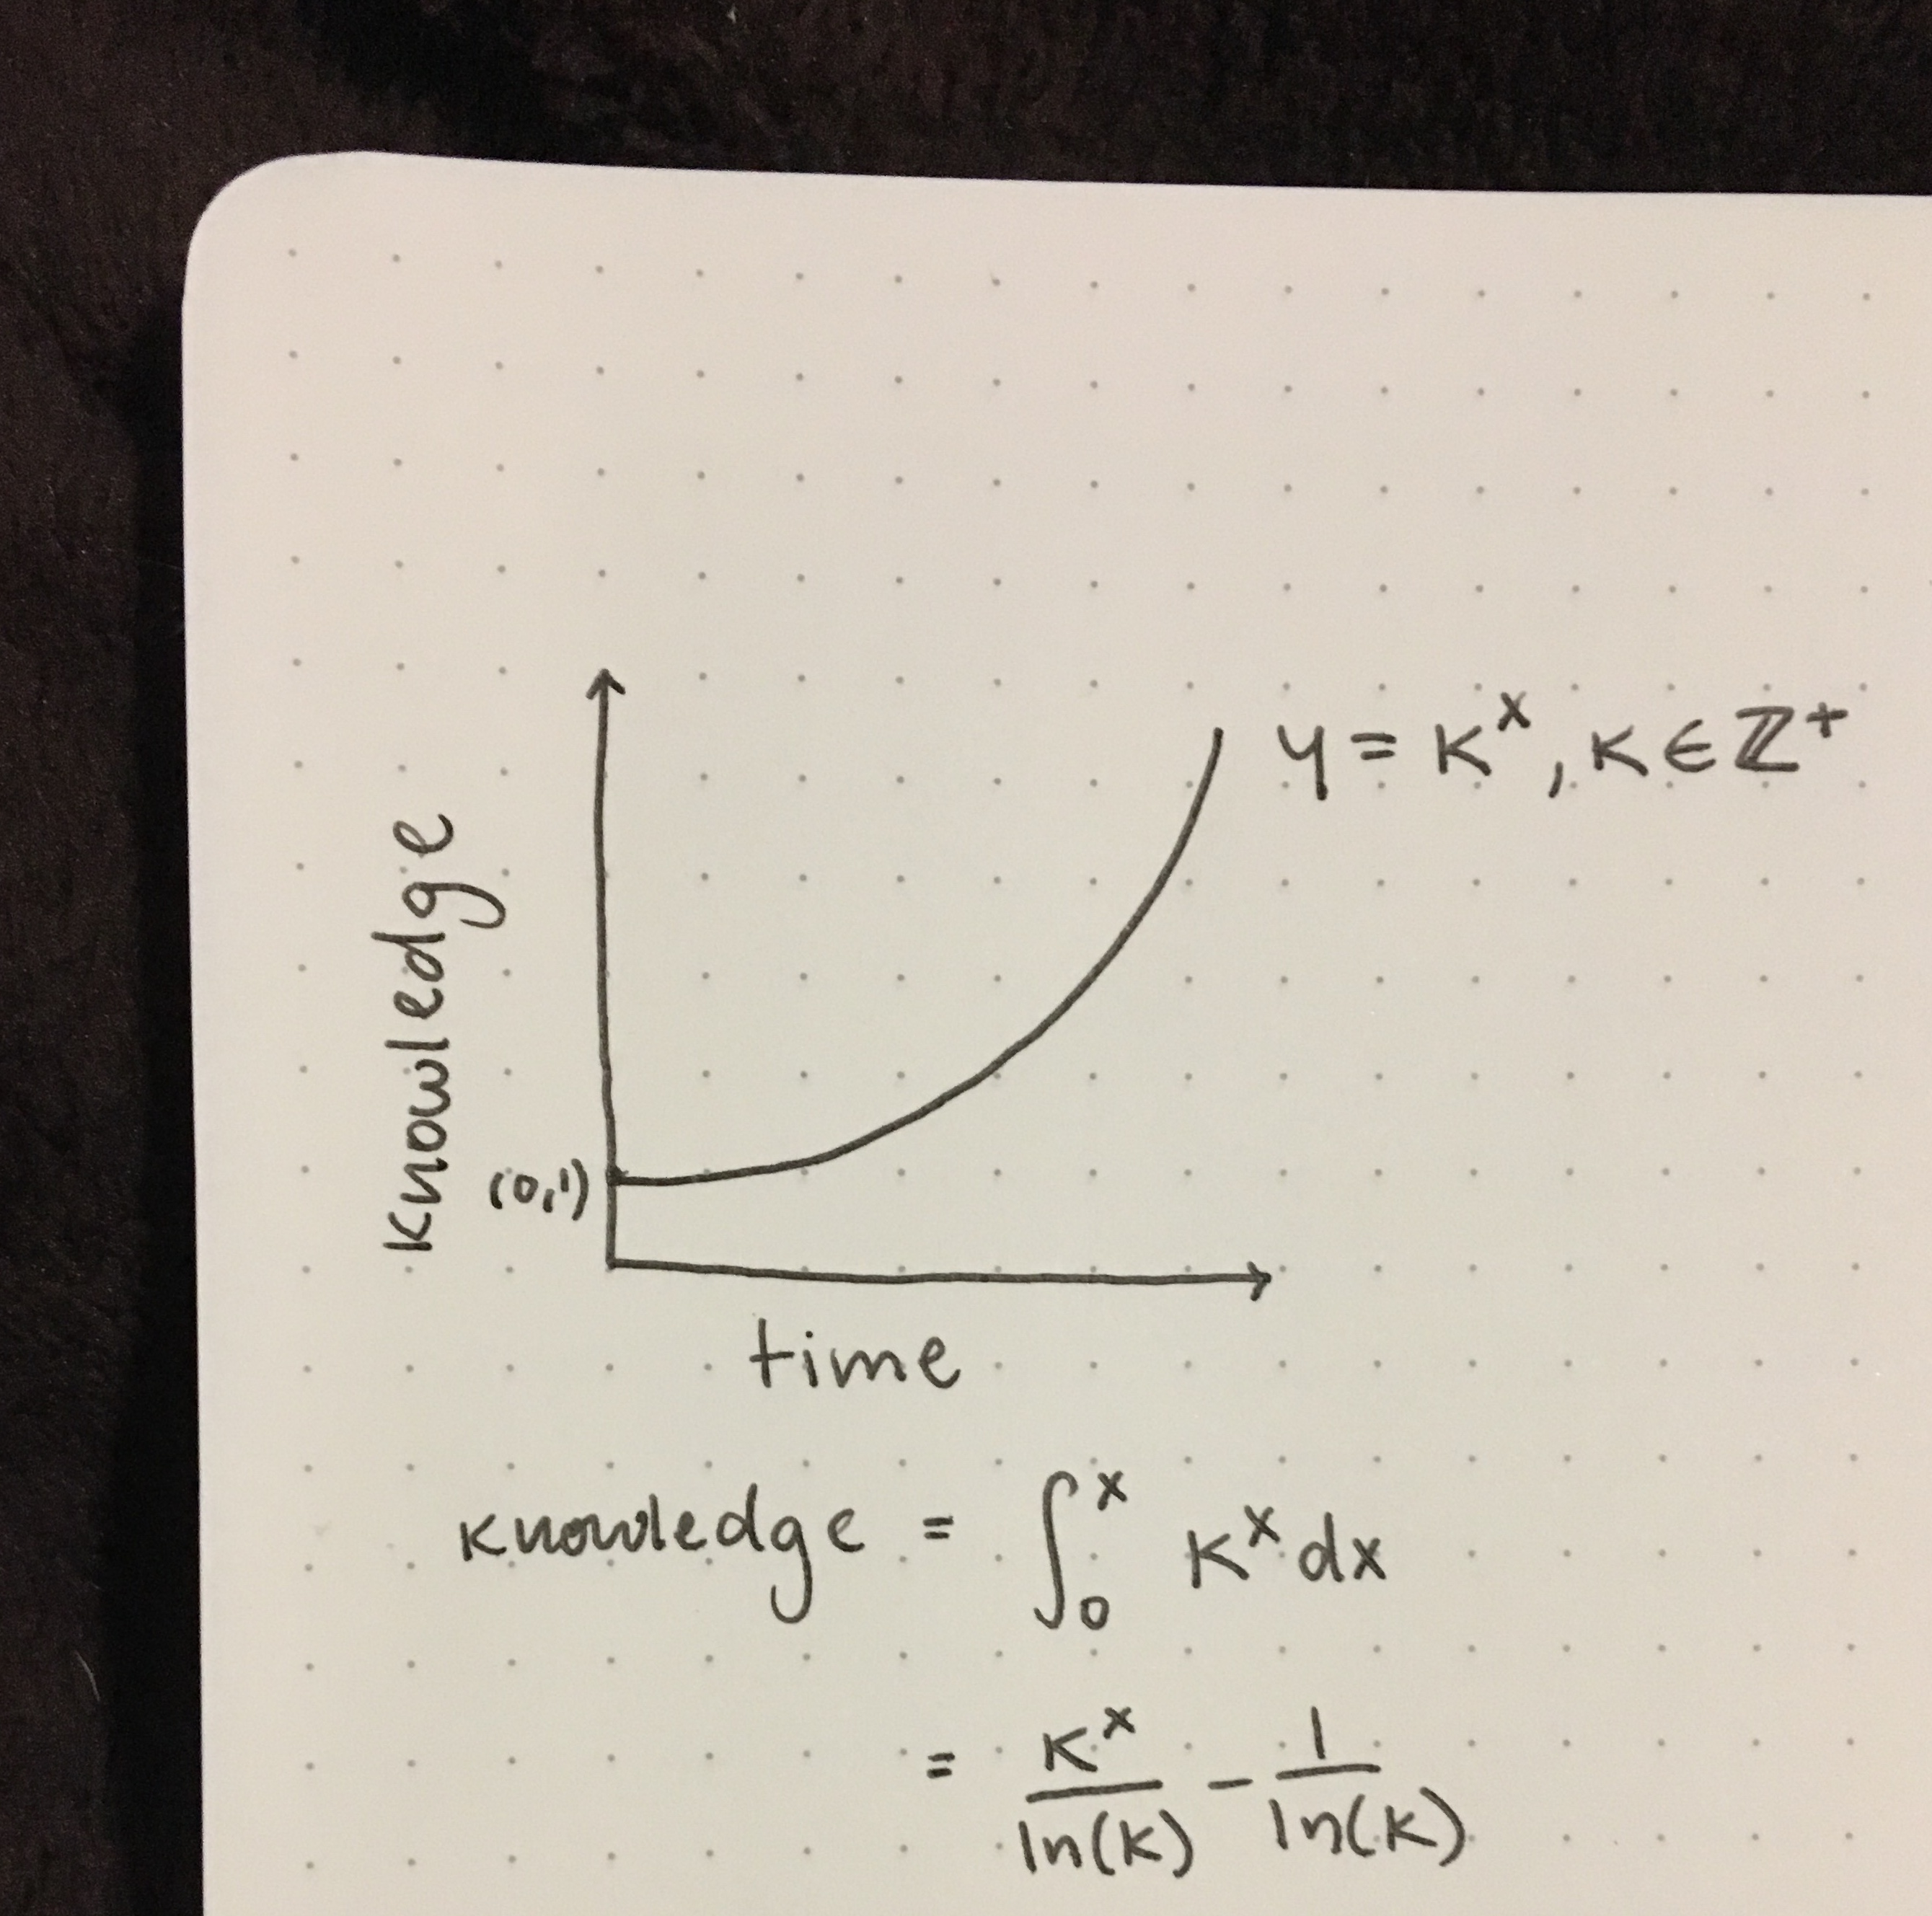 A graph drawn in black pen on dot paper. Knowledge is on the y-axis and time on the x-axis; it shows knowledge increasing exponentially with time. Below, an integral is calculated which gives the sum of knowledge over time.